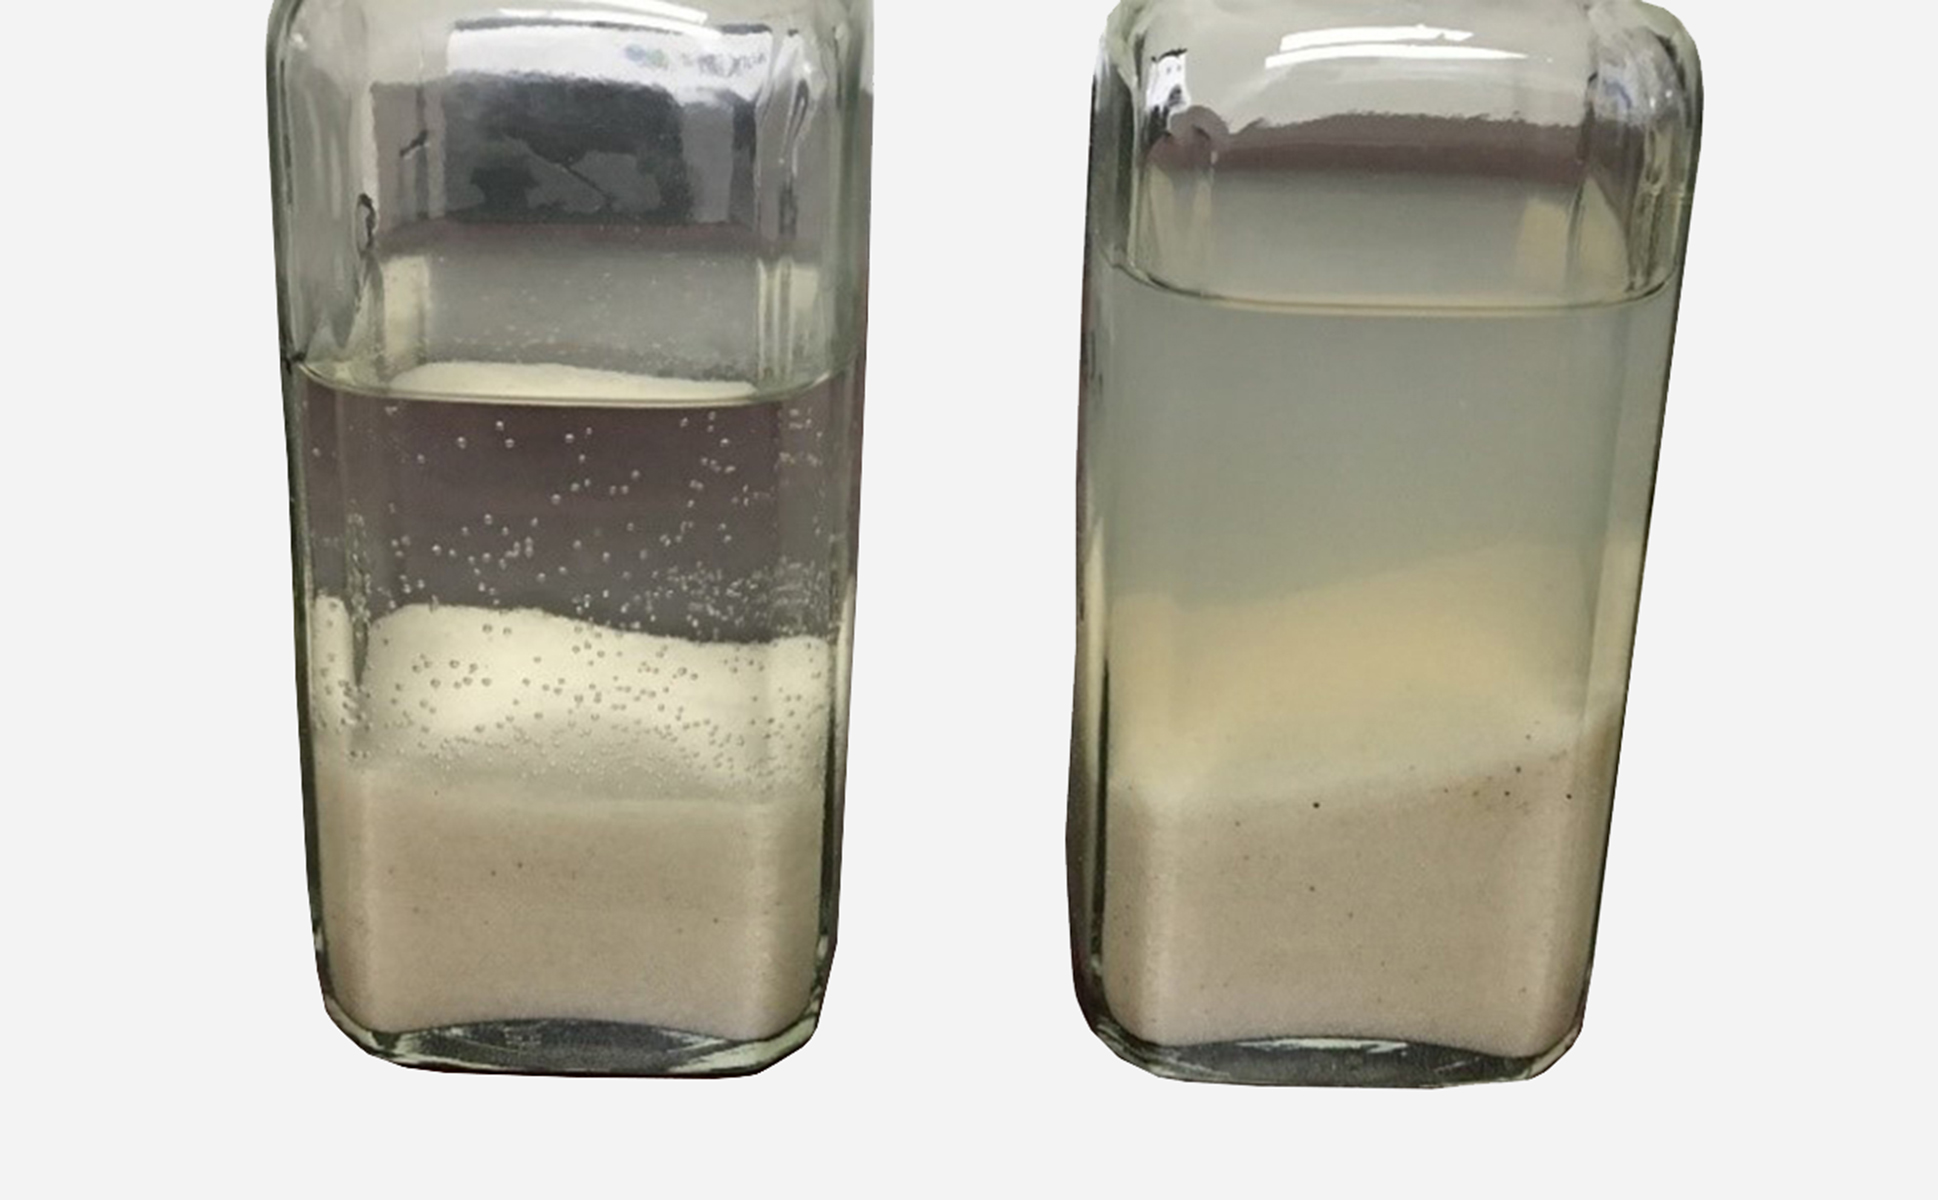 Sentinel - Turbidity Test Jar Photo